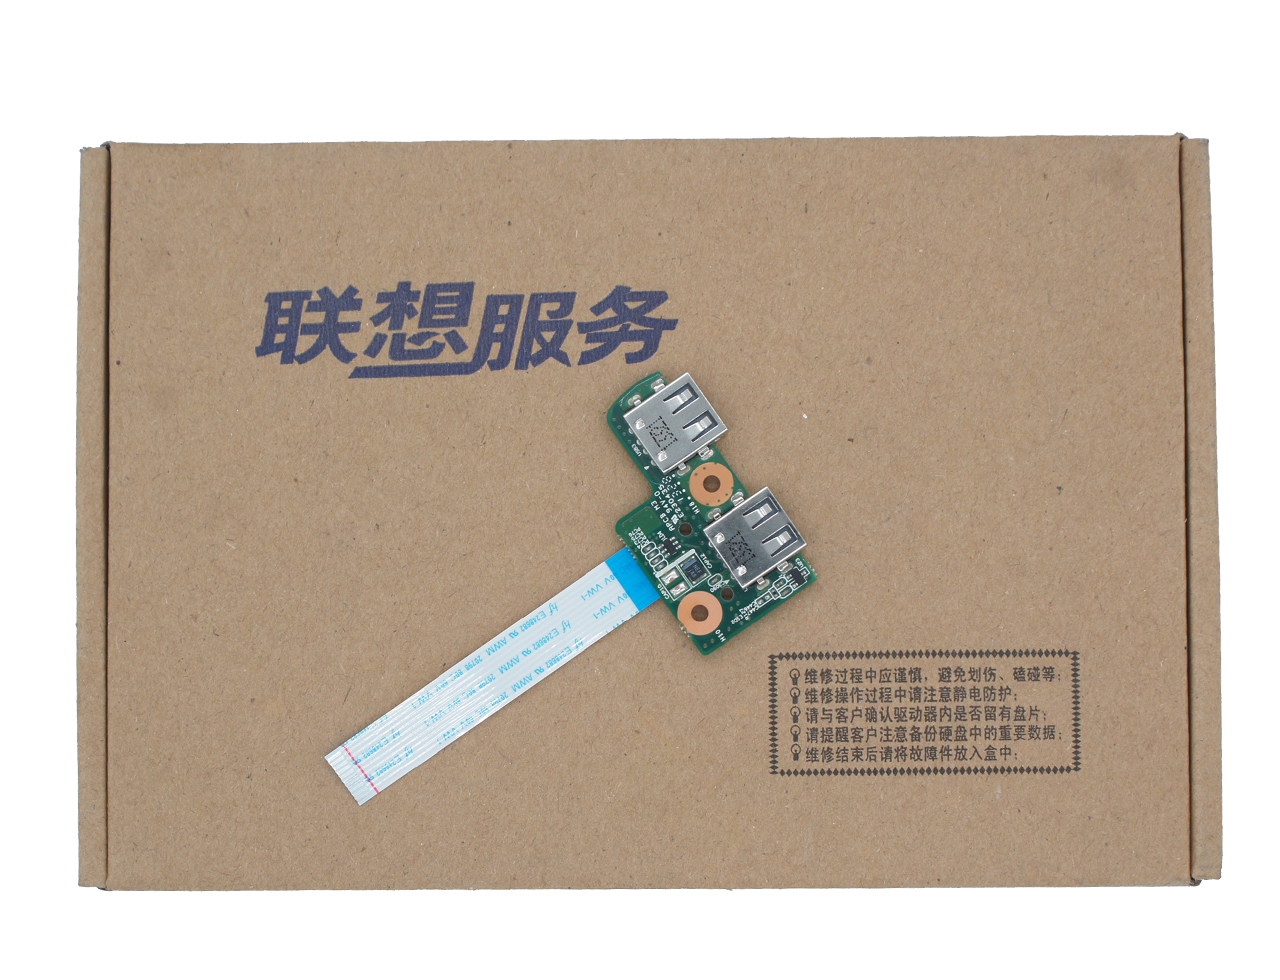 新到货109片 lenovo idea pad s110 s100 USB BH5138a_REV 1.3 board USB接口小板 插口